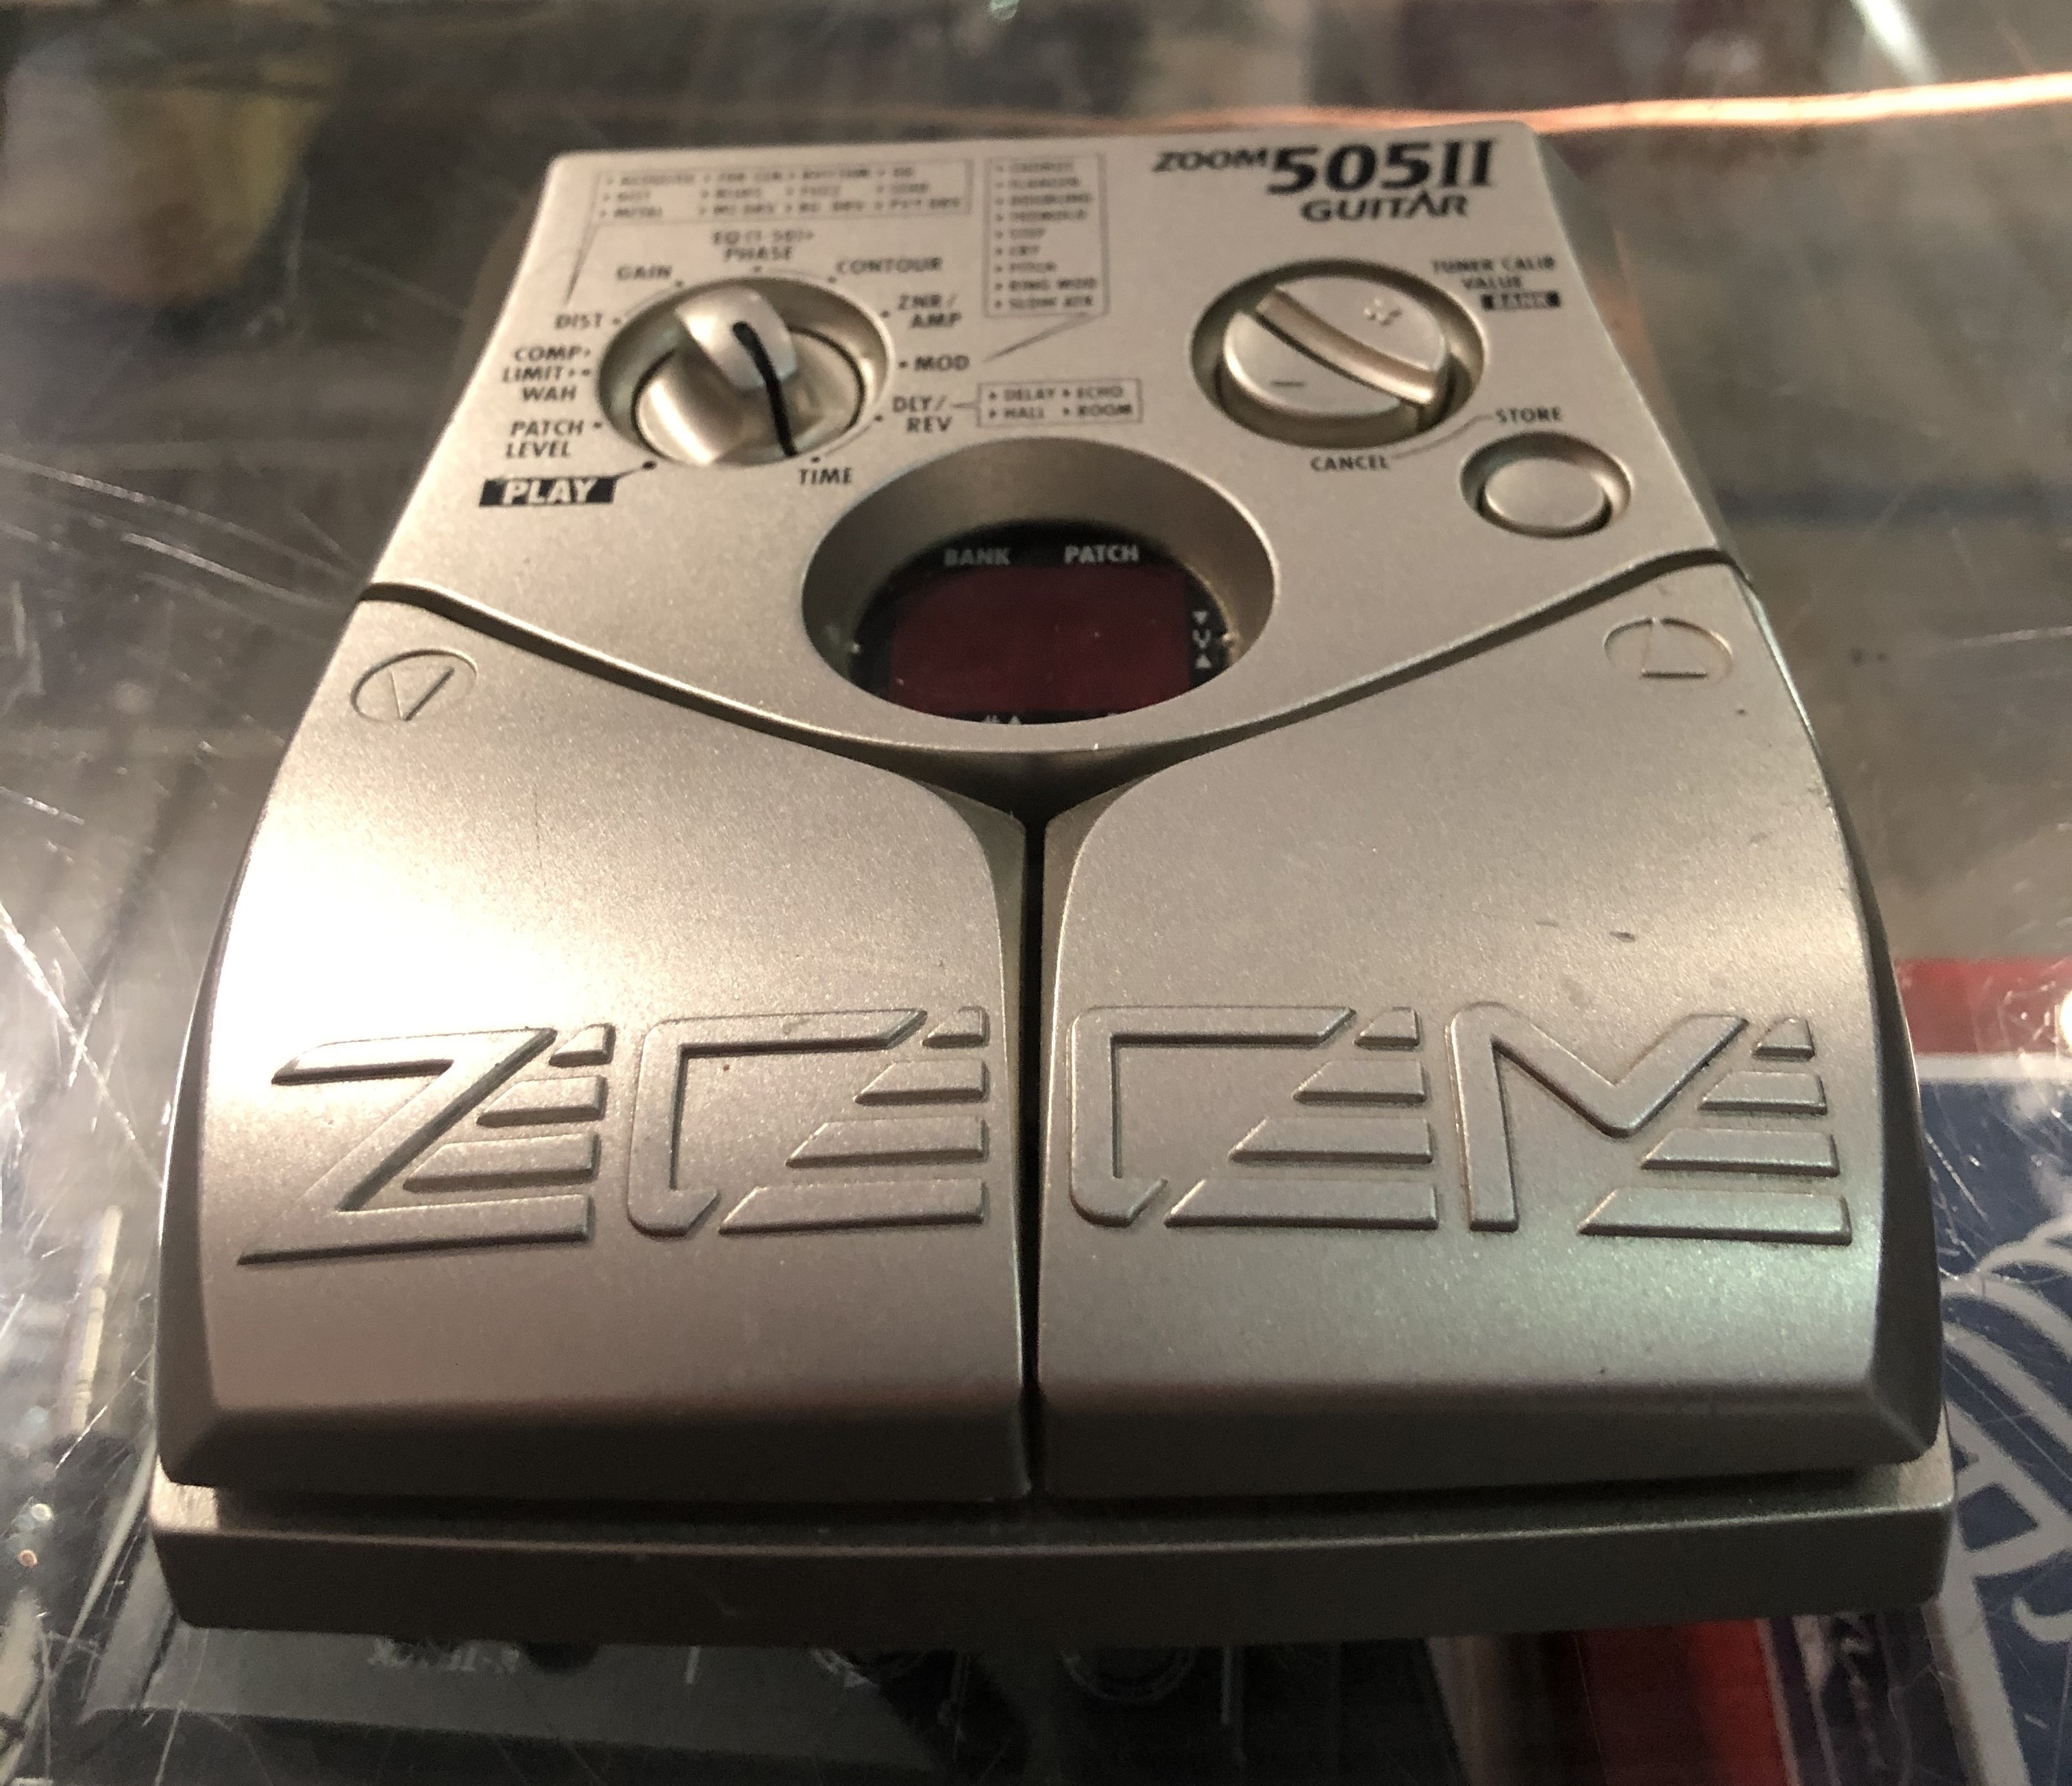 ZOOM - 505II Guitar Compact Multi-Effects Pedal